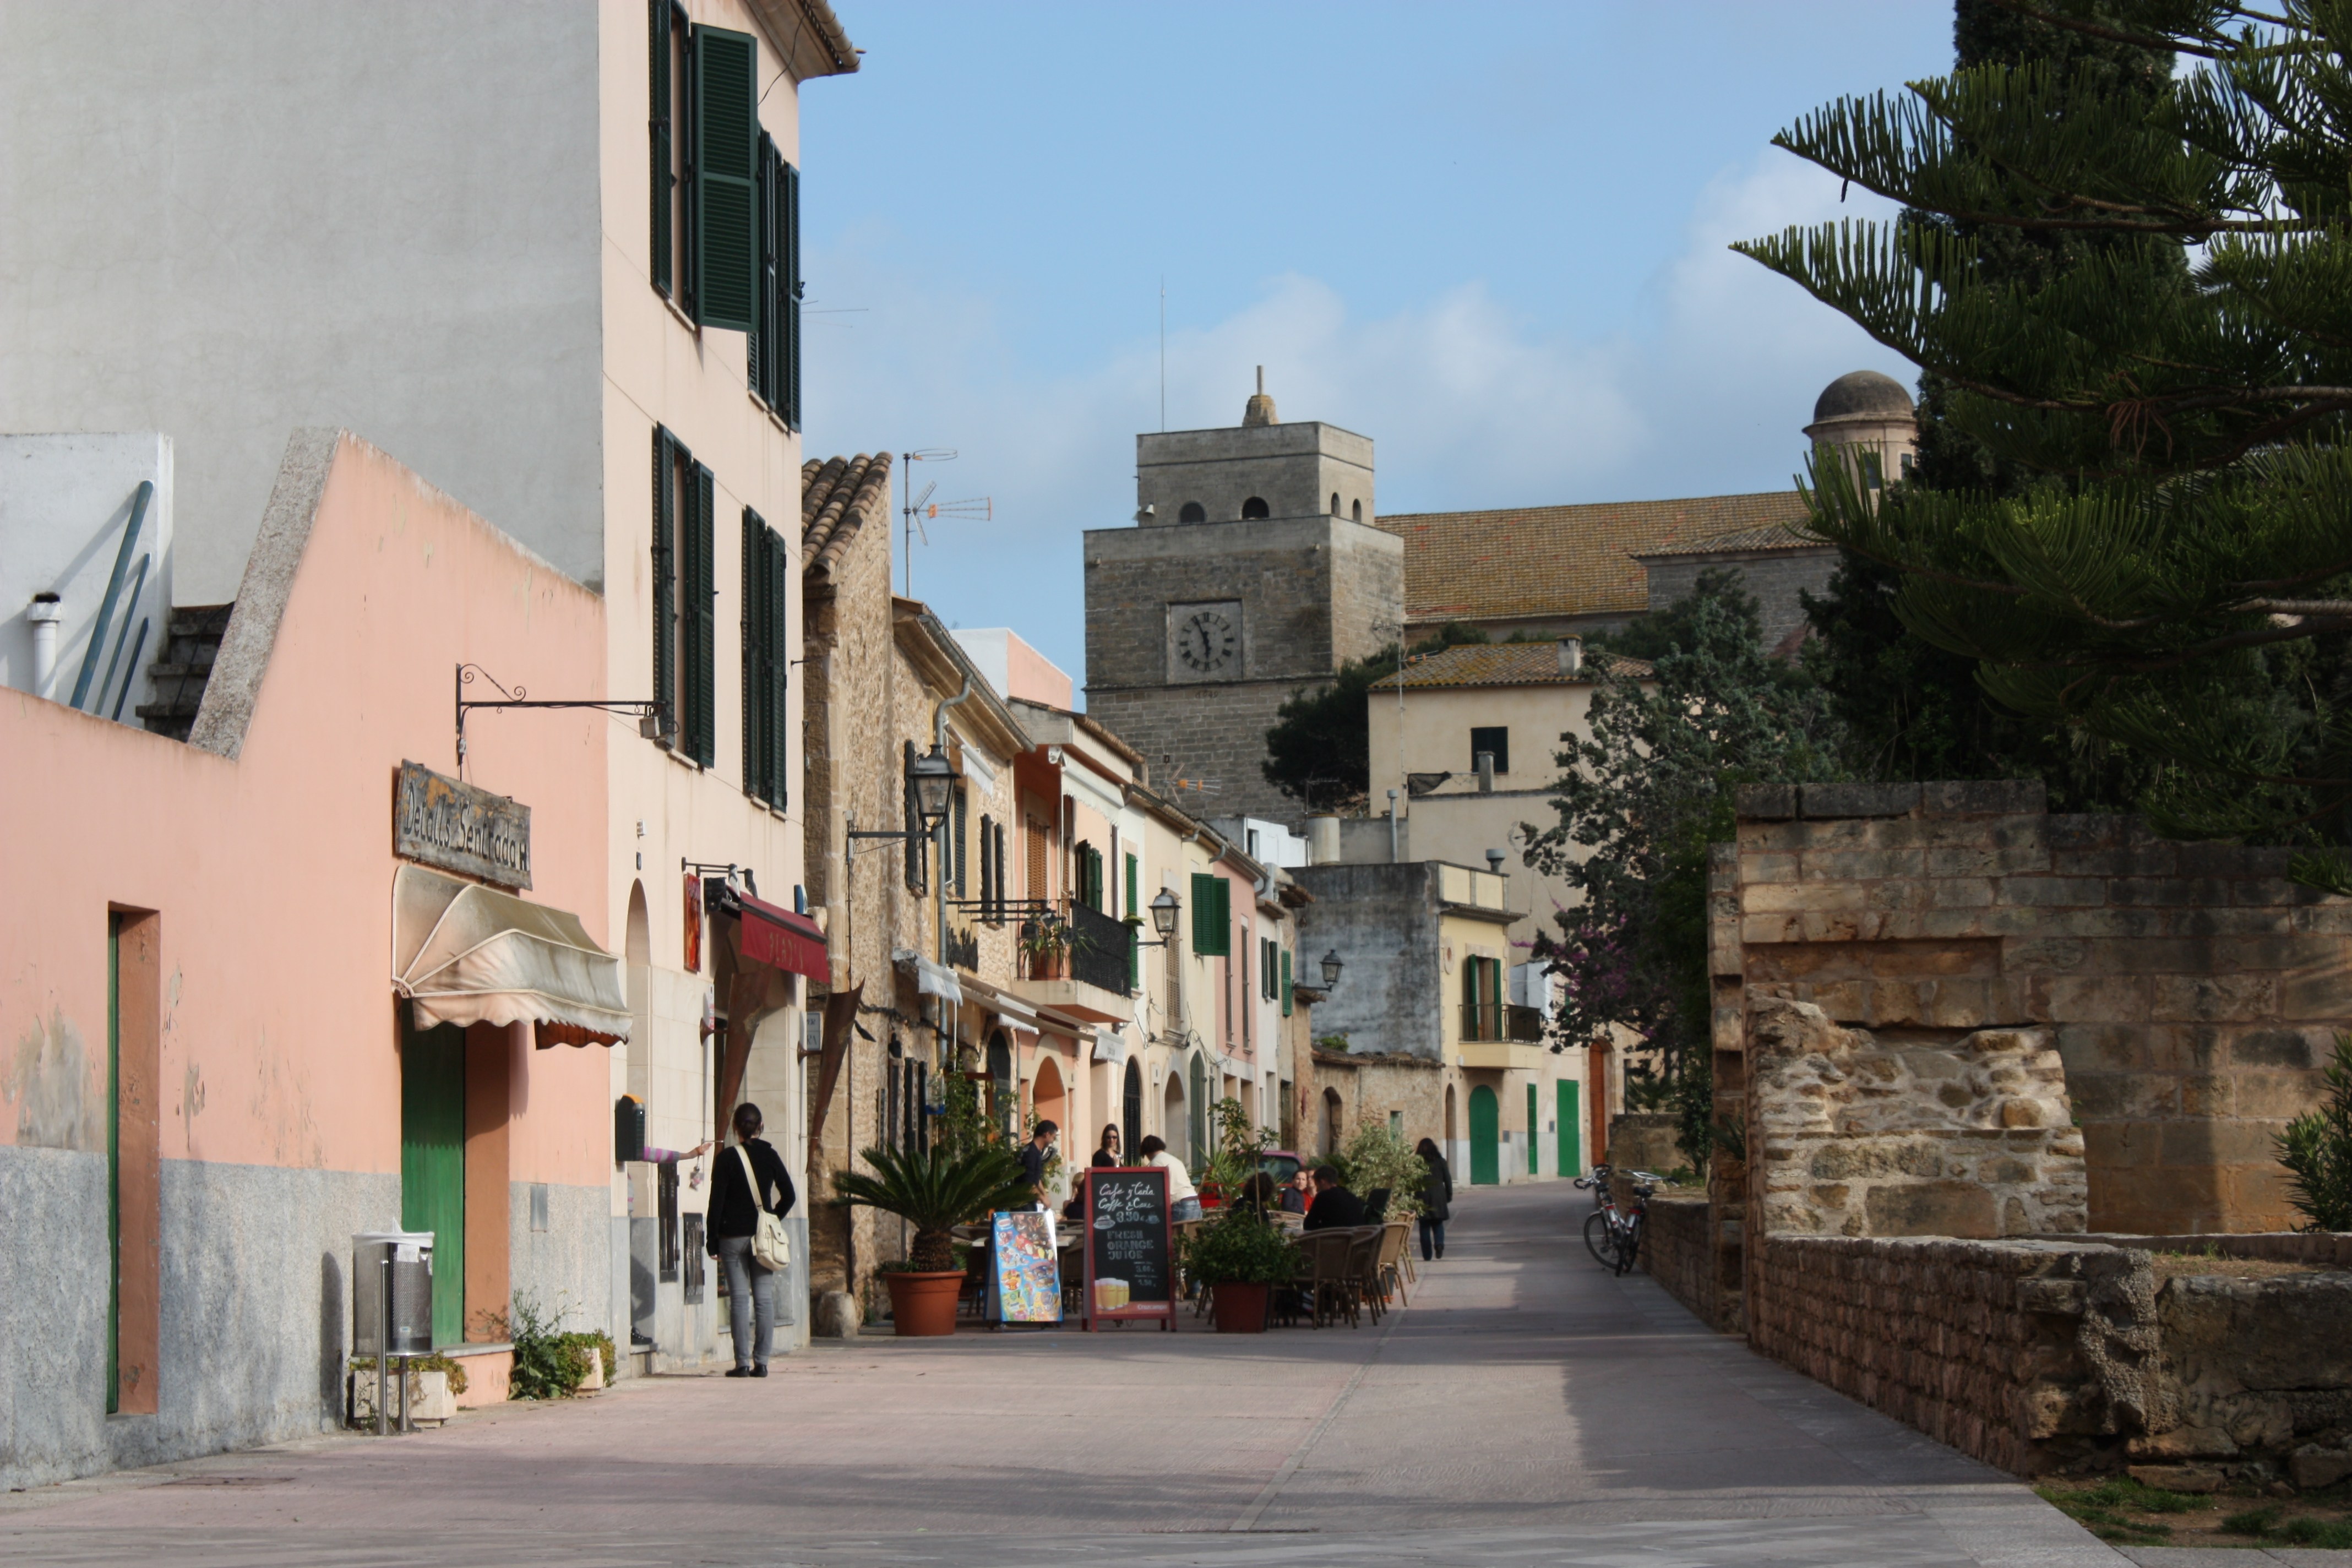 Buildings in Alcúdia Old Town